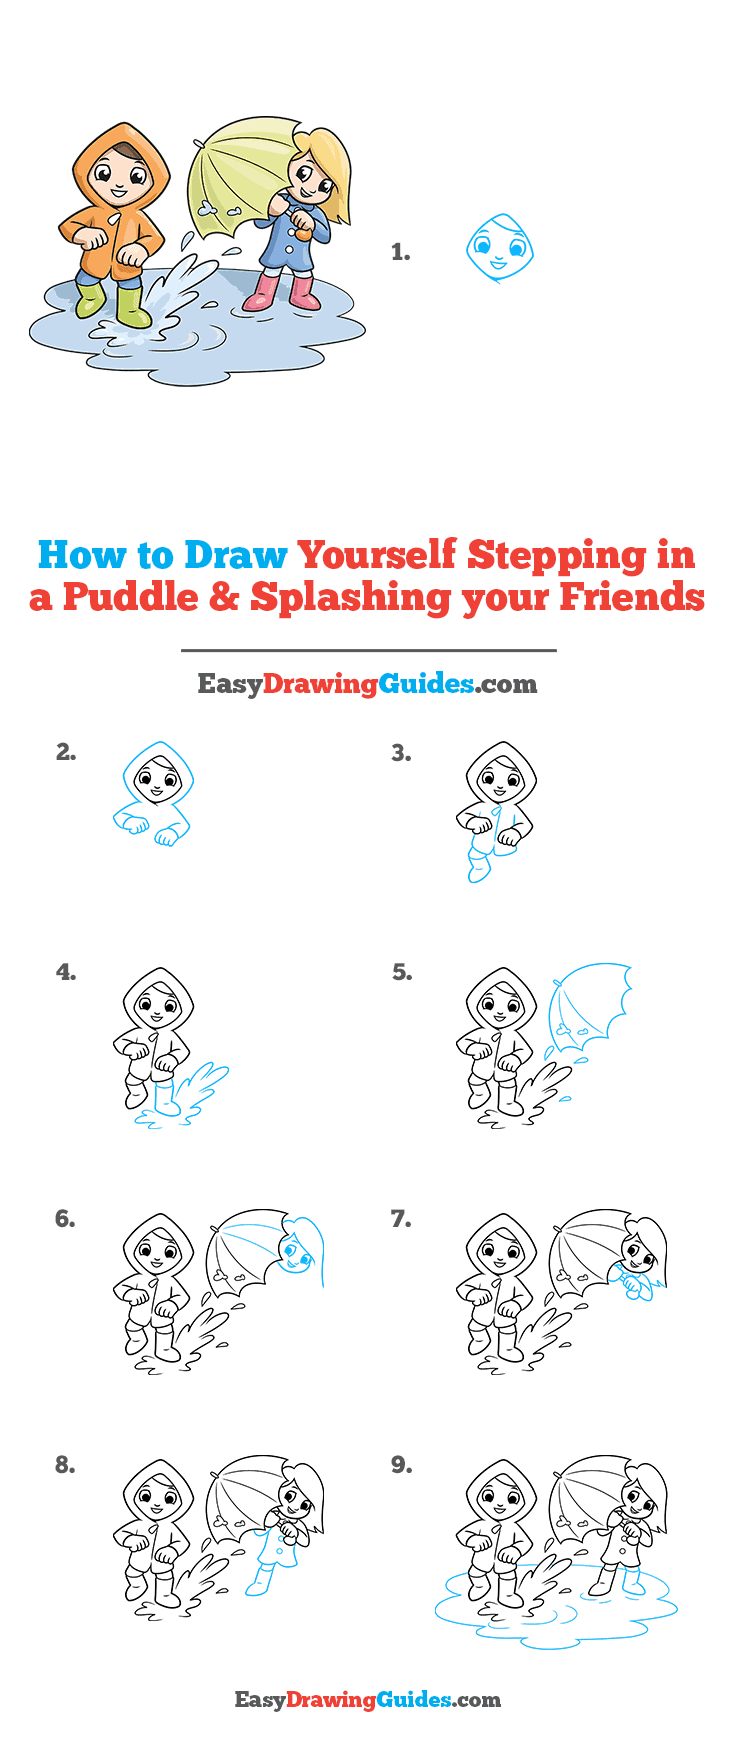 How to Draw Yourself Stepping in a Puddle and Splashing your Friends